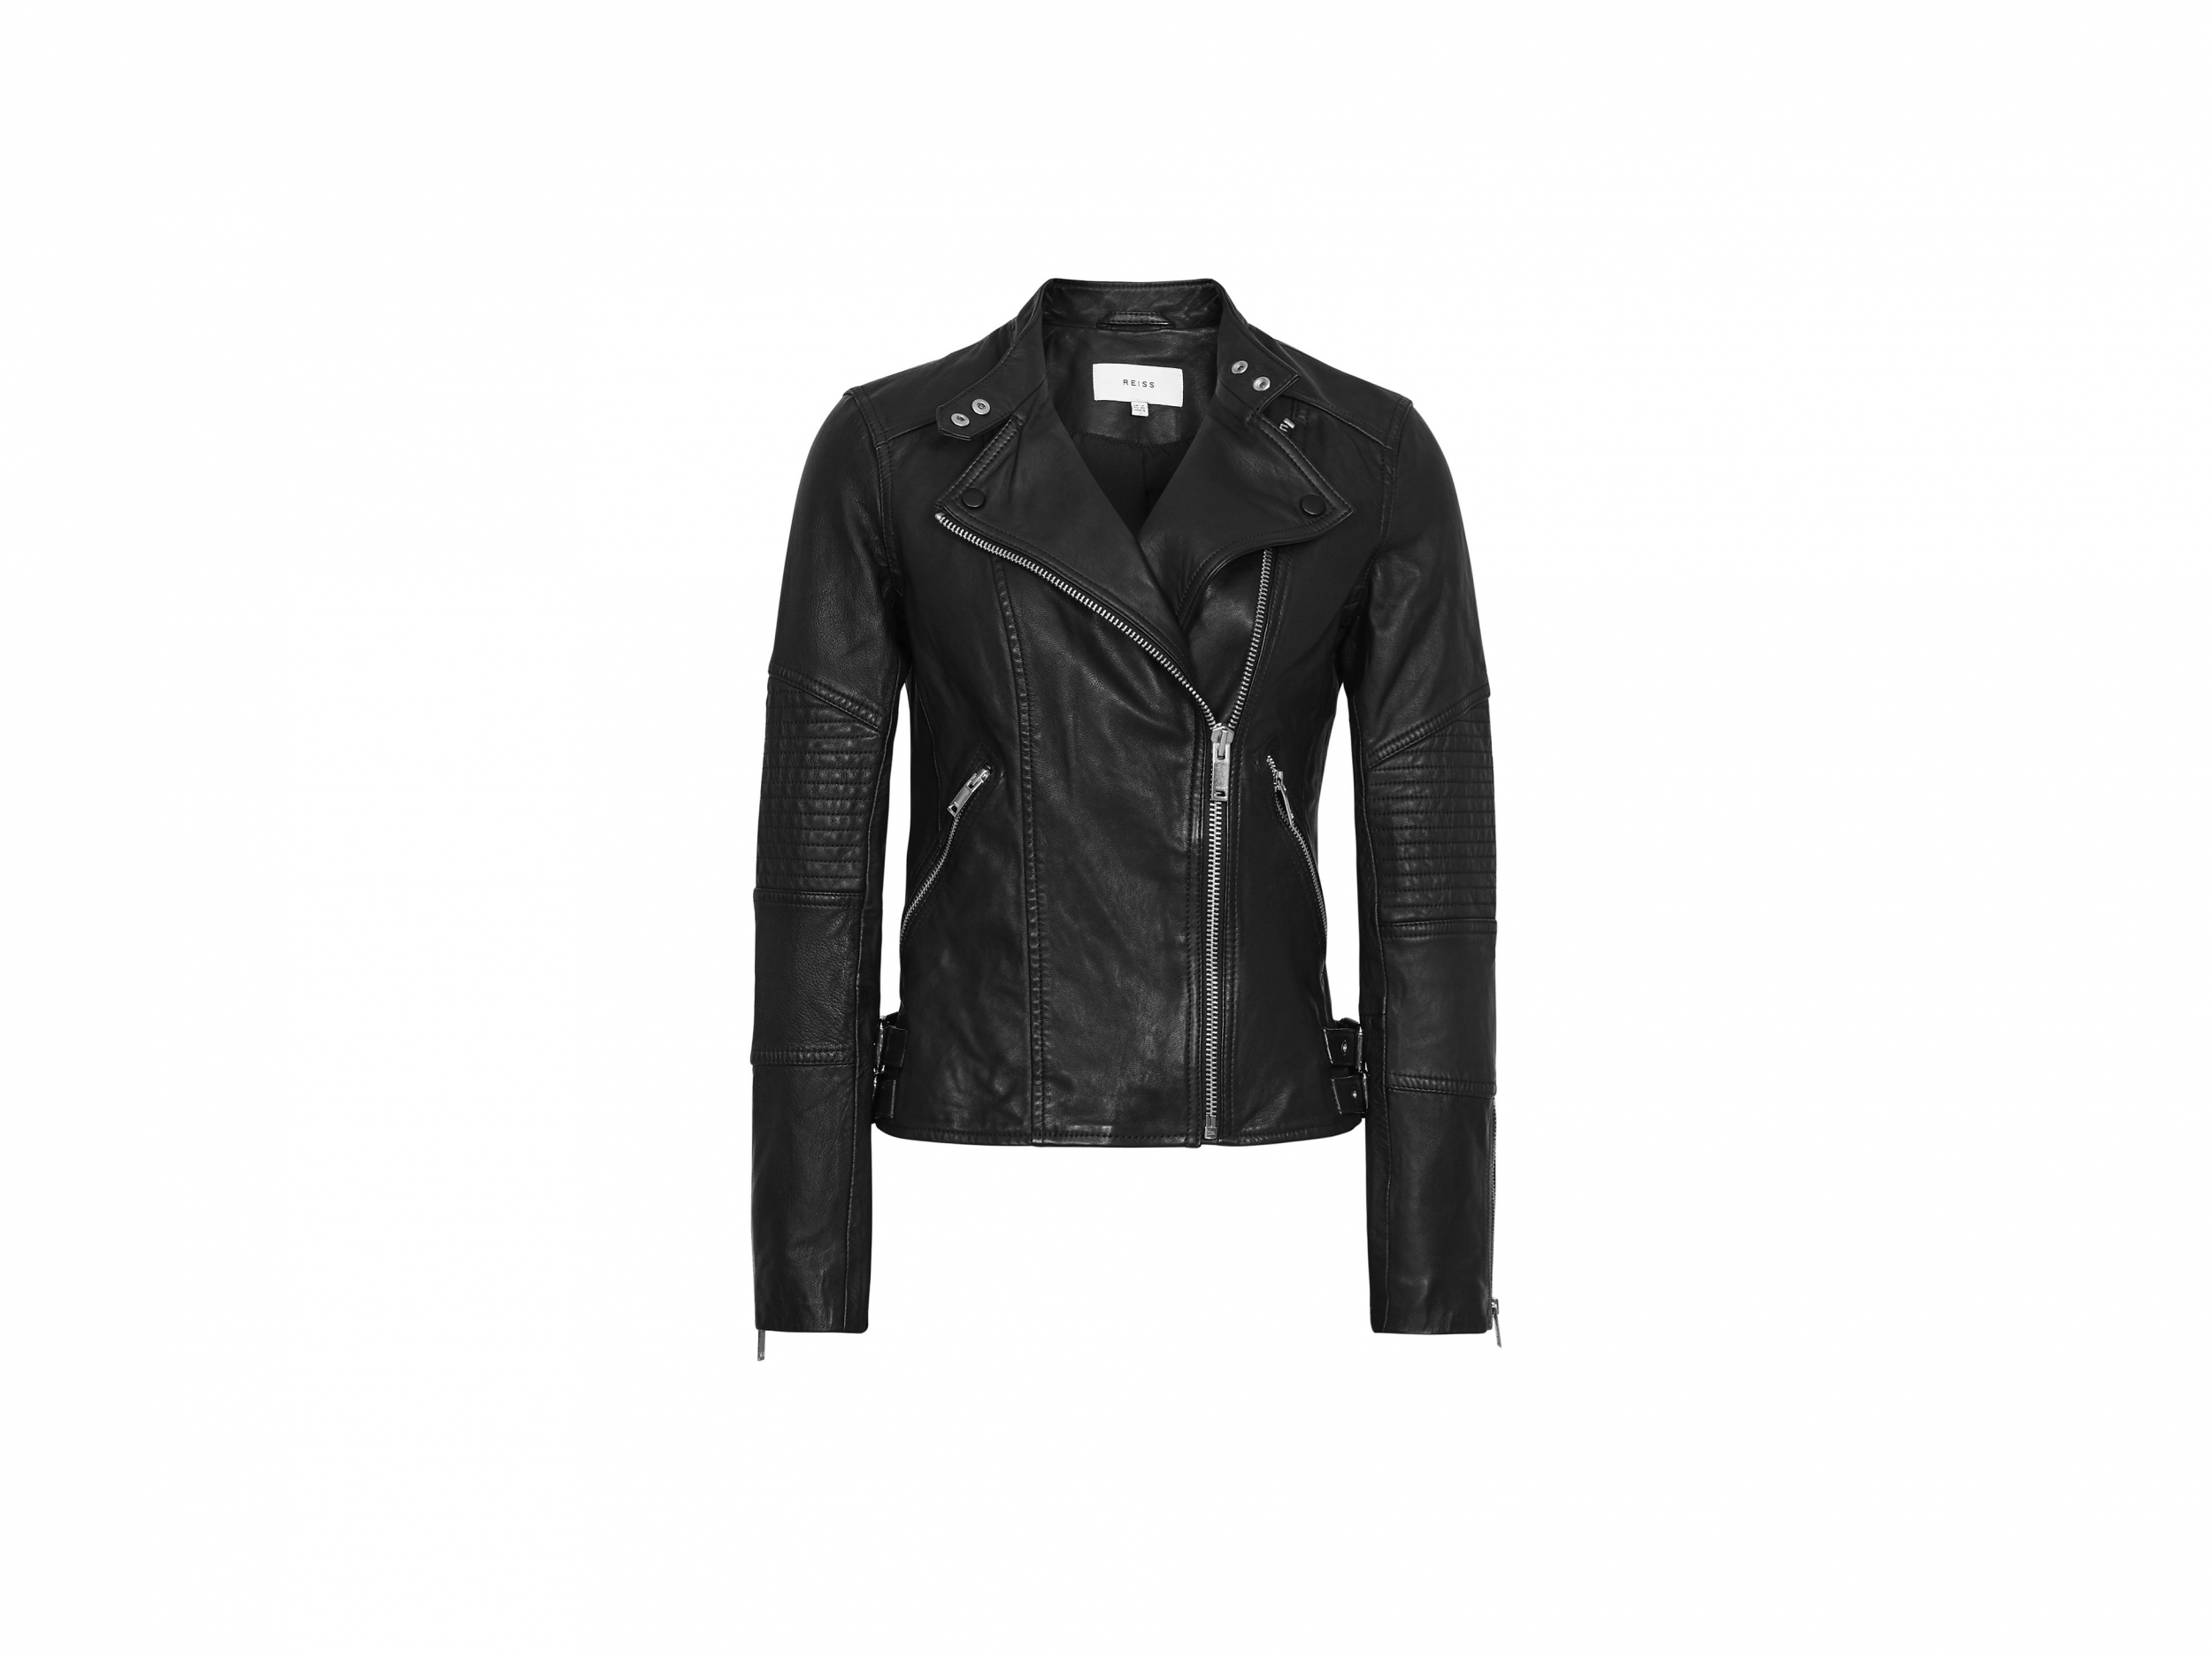 10 best women's leather jackets | The Independent